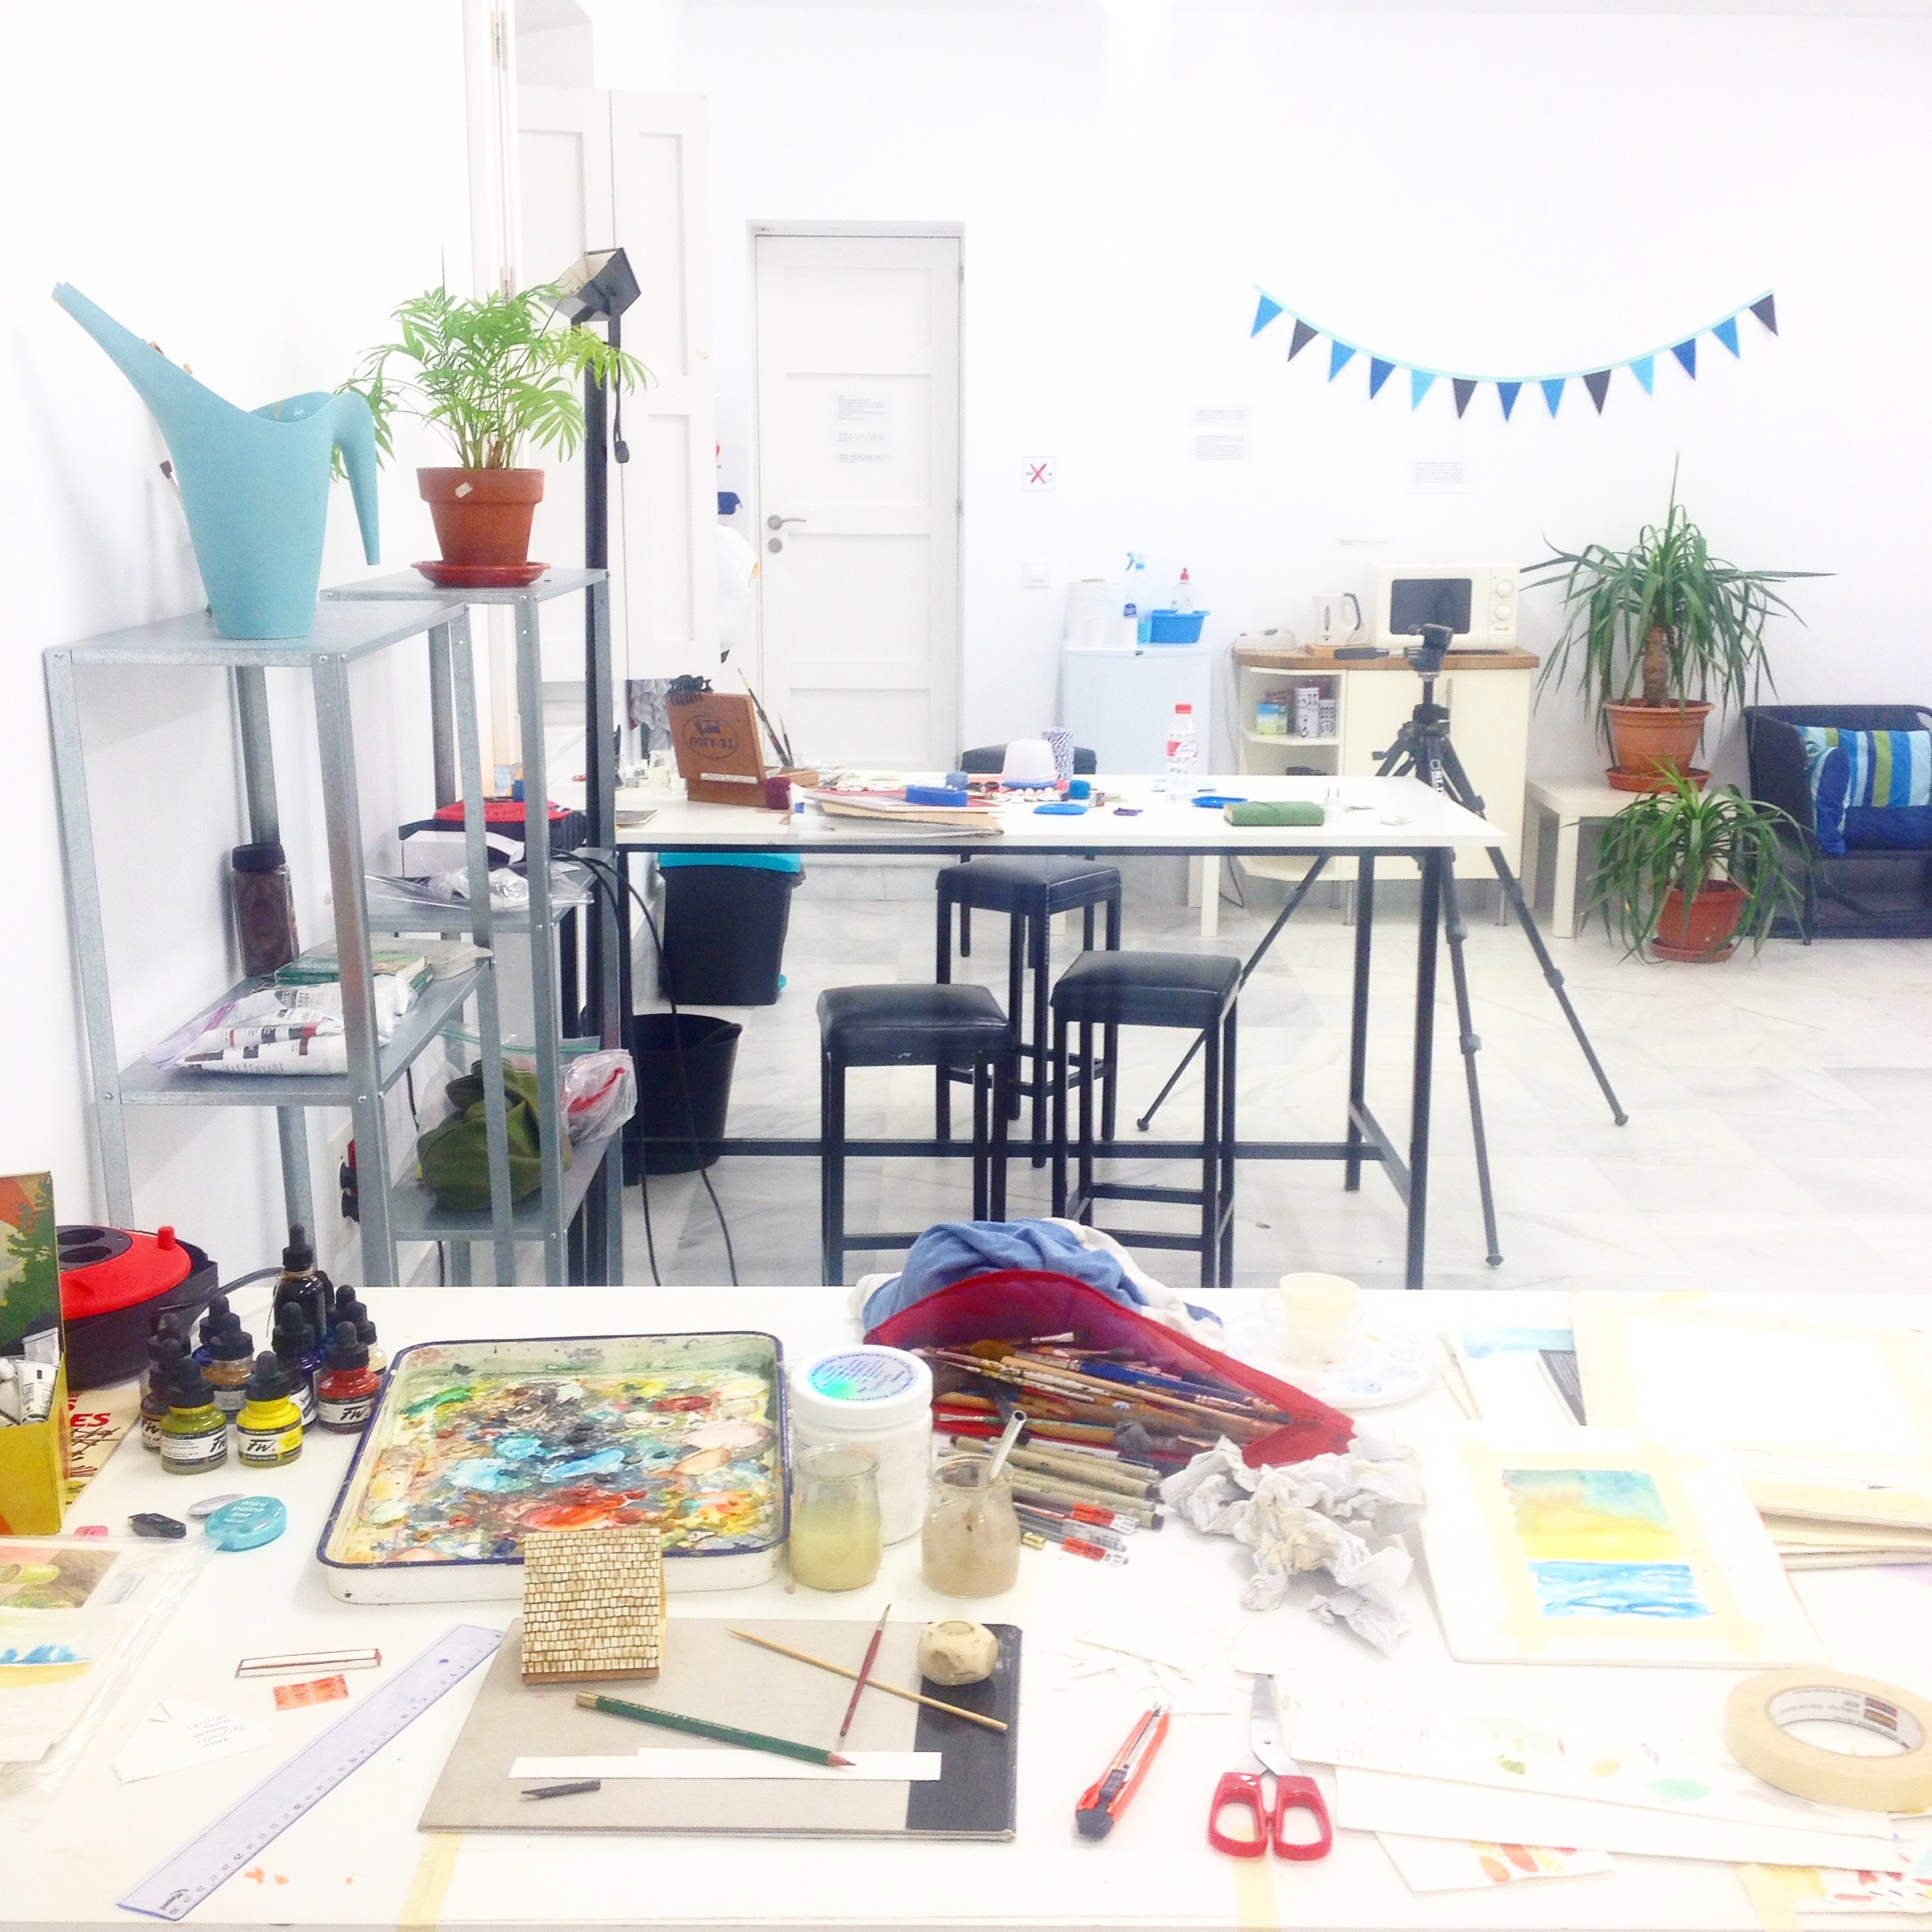 Art studio at the Linea de Costa art residency